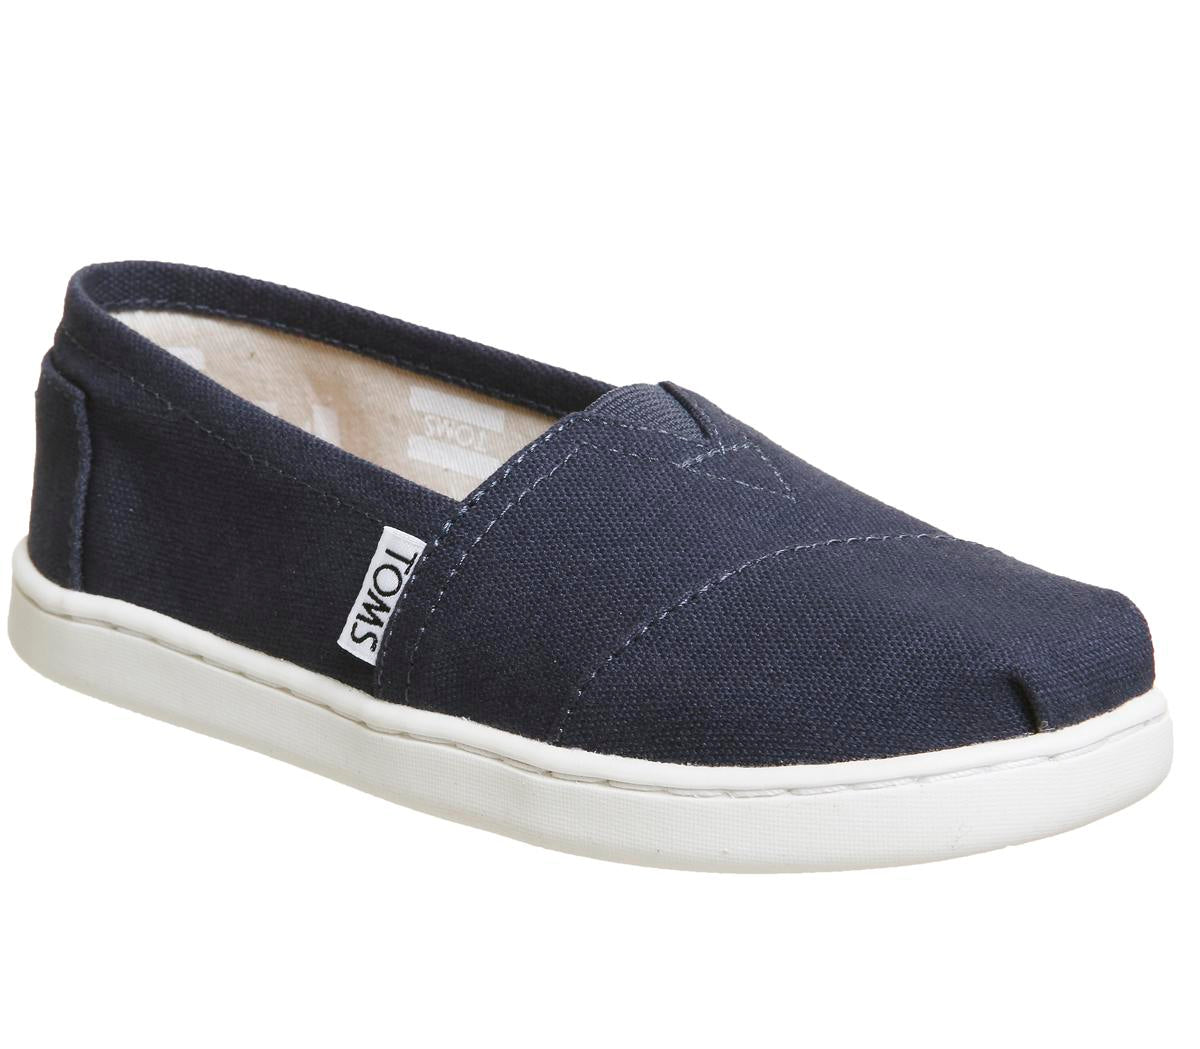 Kids Toms Youth Classics Navy White